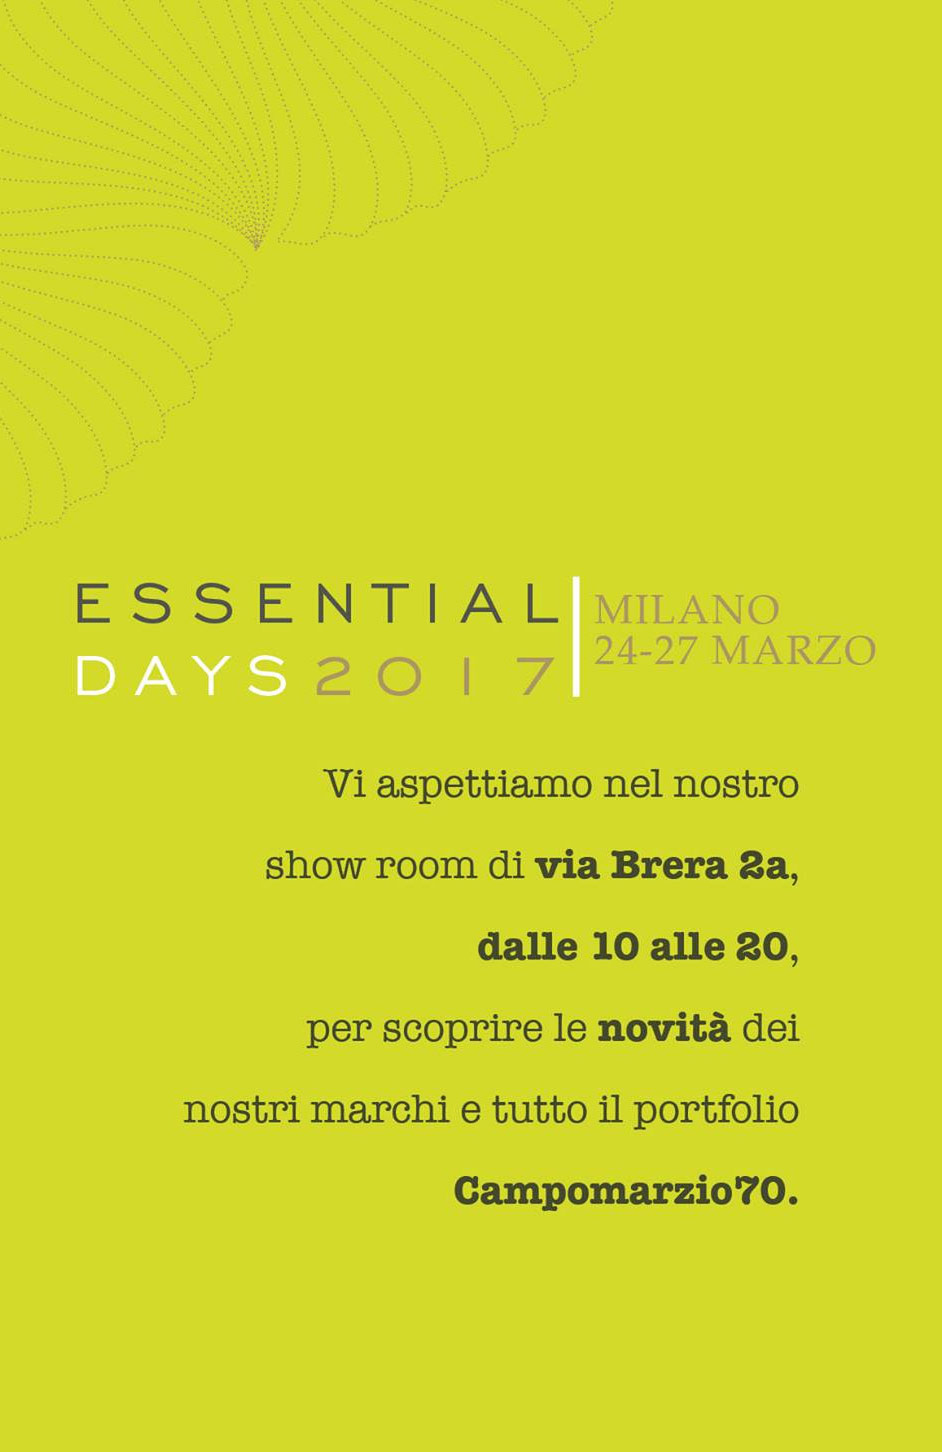 campomarzio 70 essential days 2017, milano